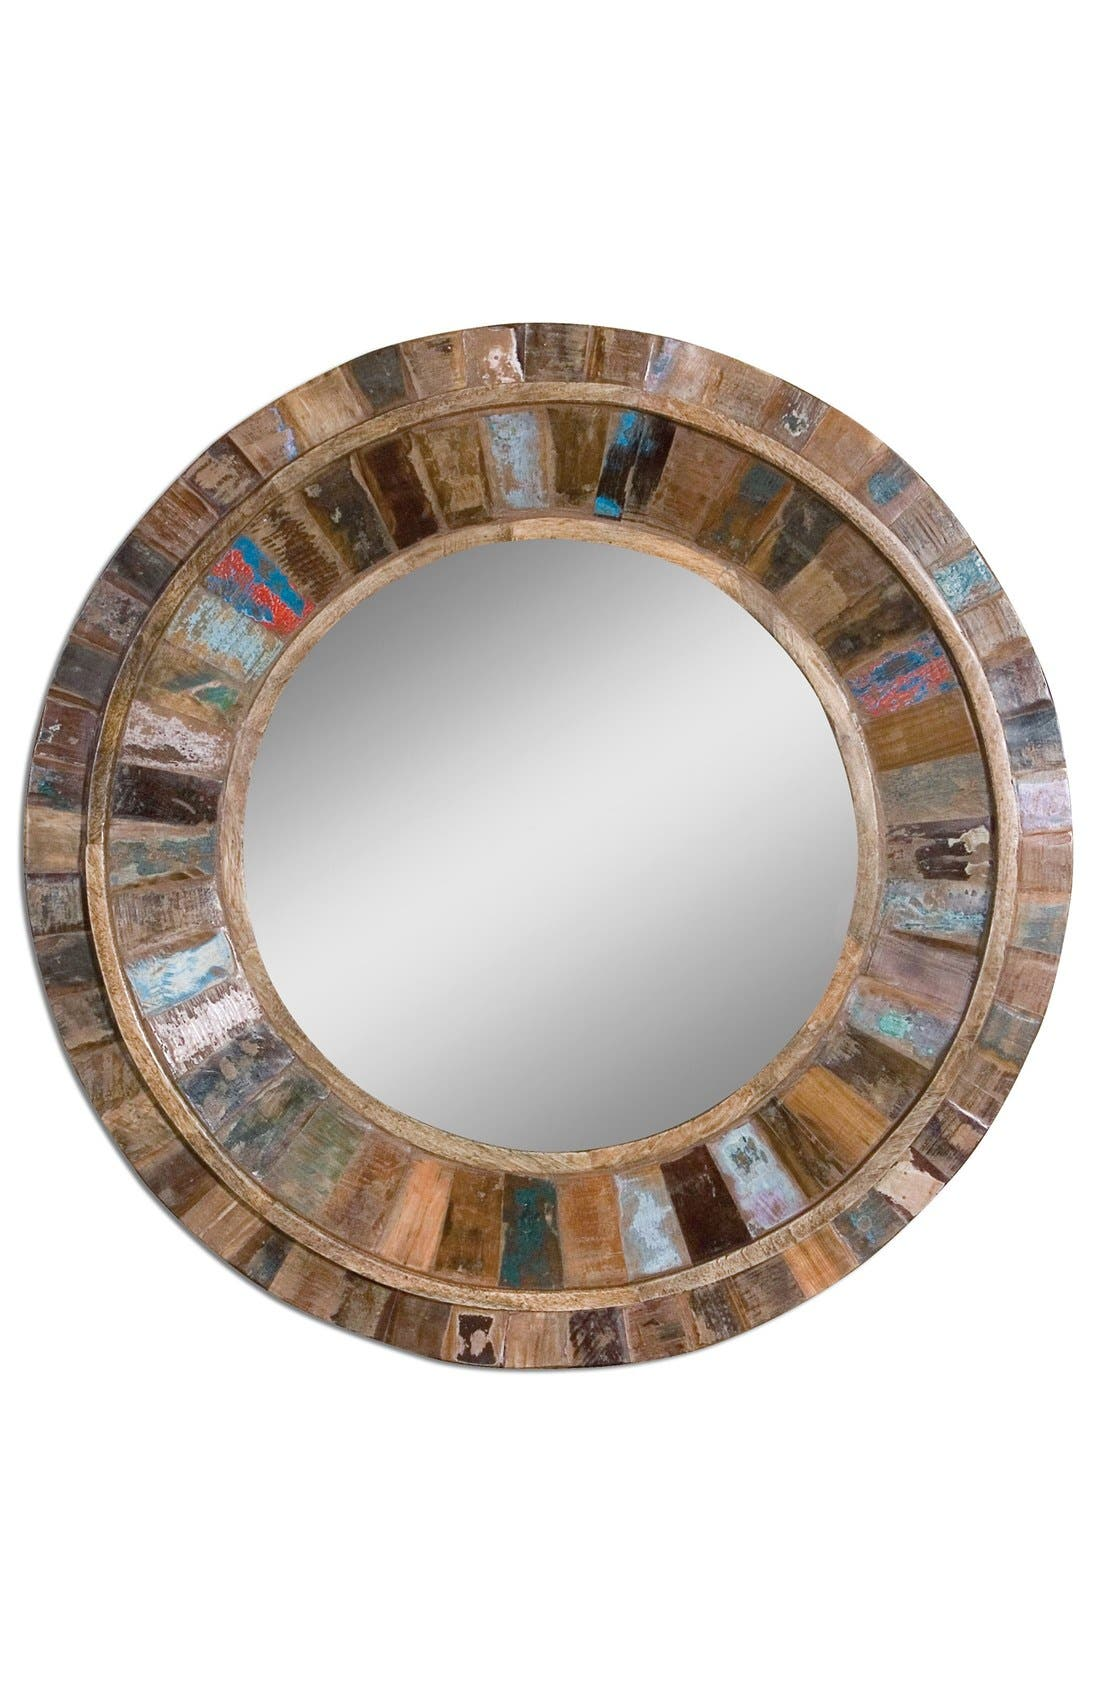 Main Image - Uttermost 'Jeremiah' Round Wooden Wall Mirror